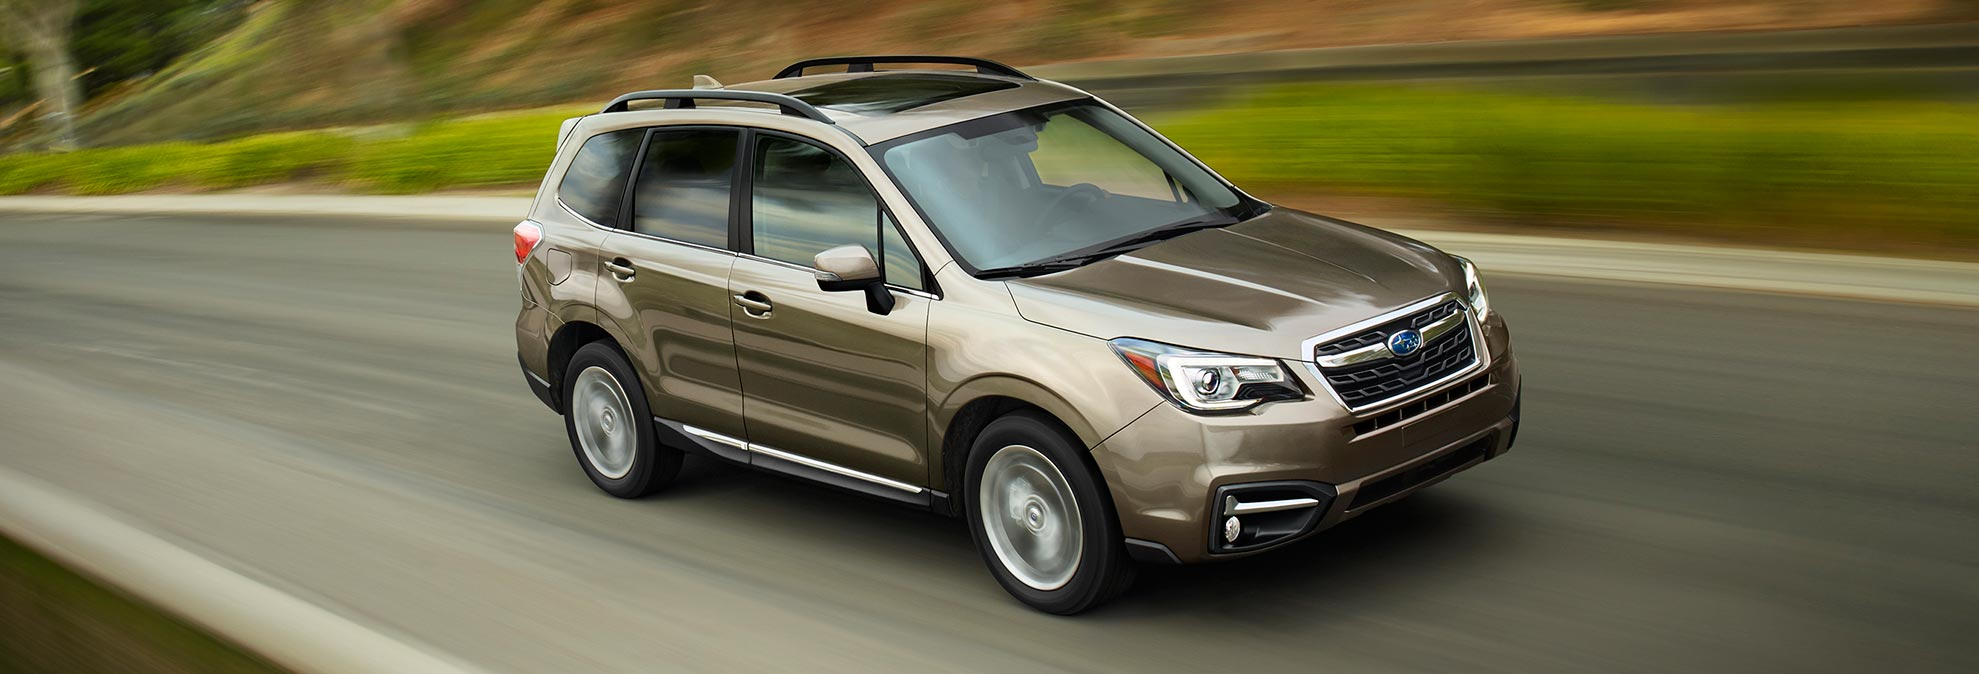 2017 Subaru Forester Continues Evolution Consumer Reports